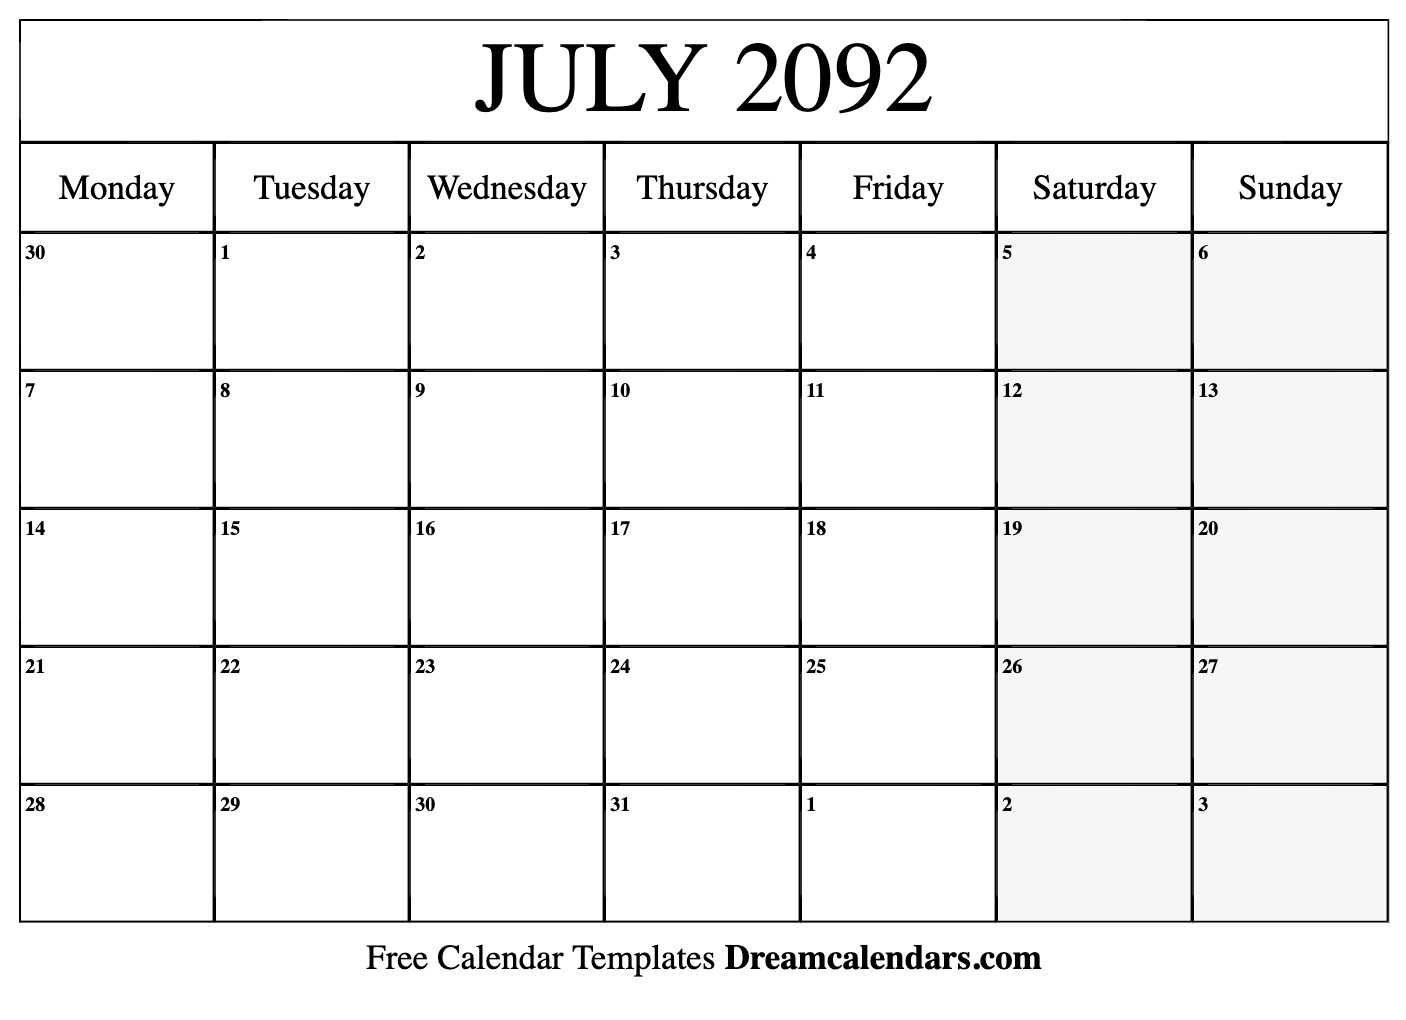 picture about Calendar for July Printable known as Printable July 2092 Calendar